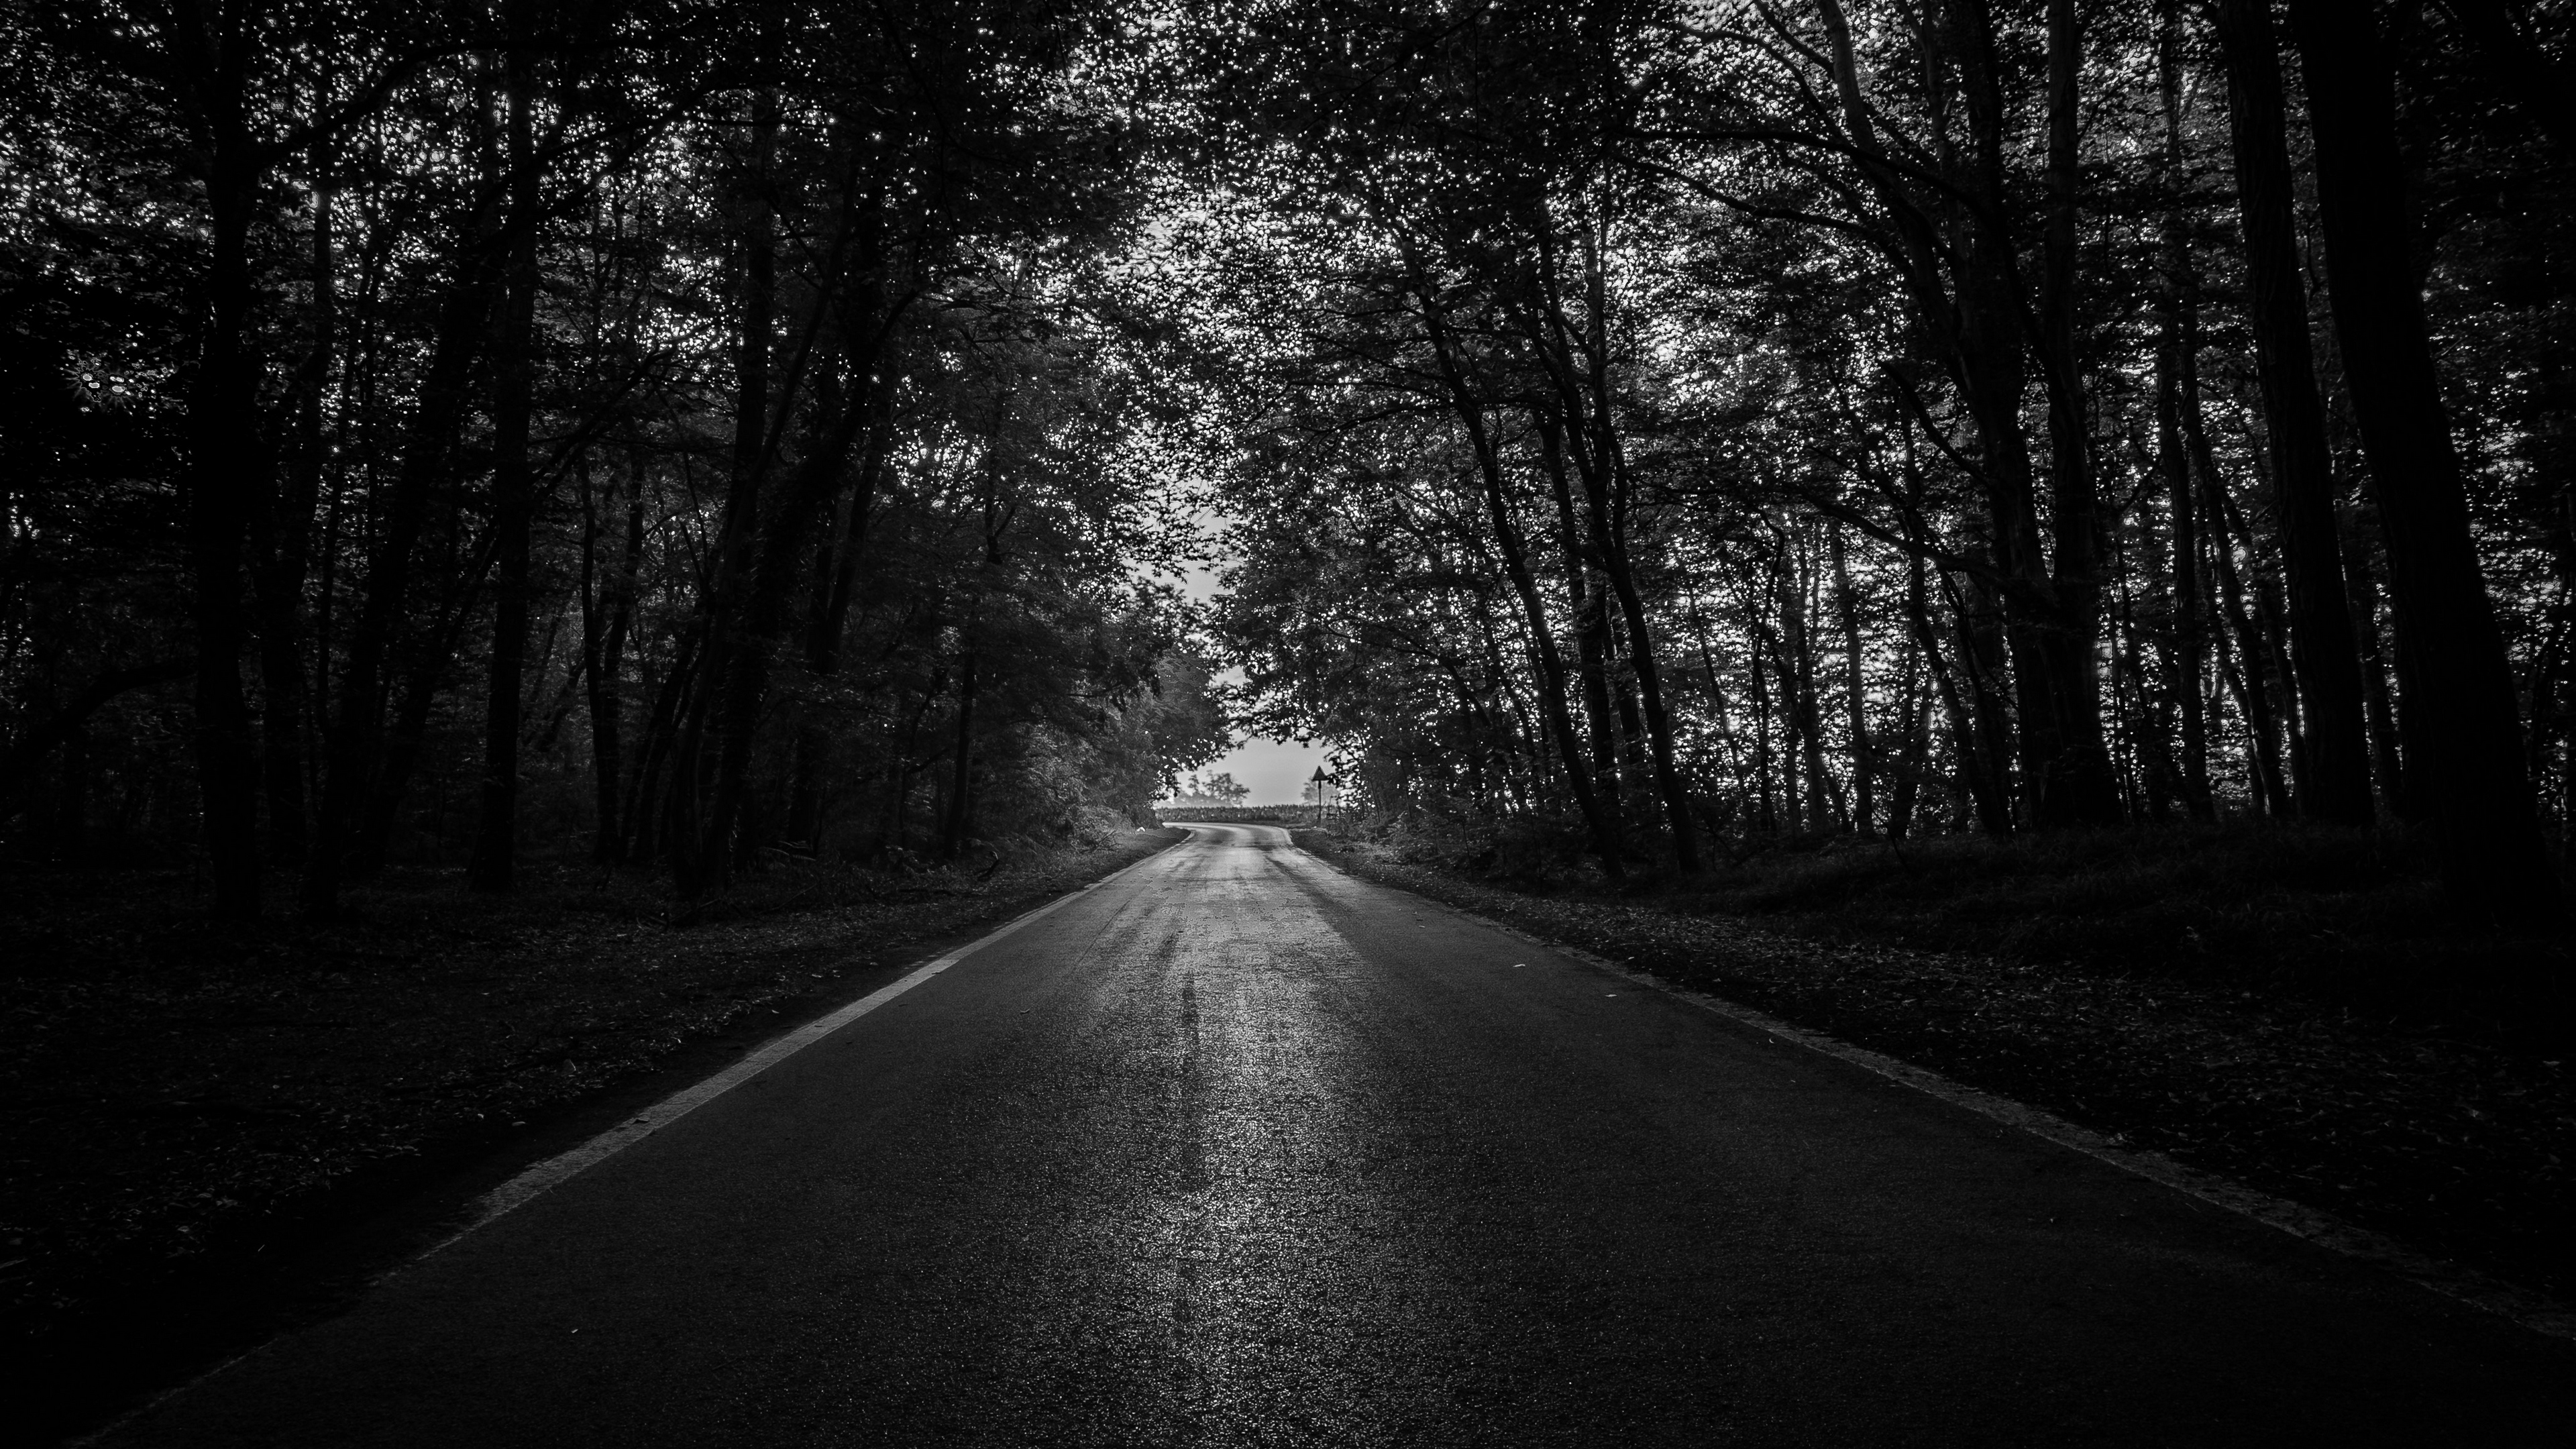 road trees bw dark forest 4k 1540575164 - road, trees, bw, dark, forest 4k - Trees, Road, bw